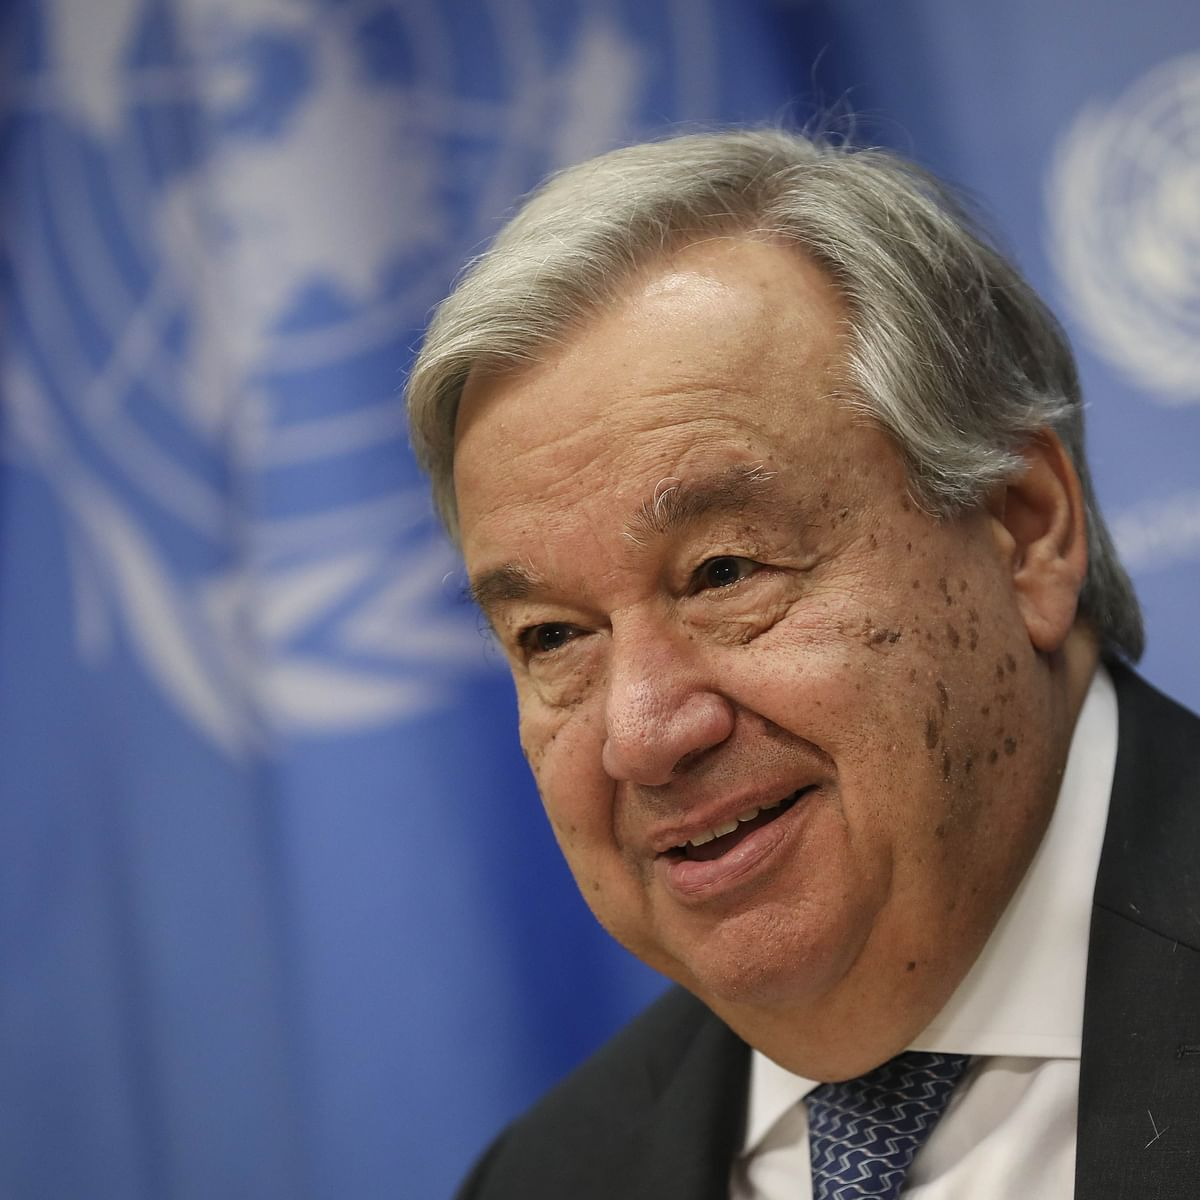 Vizag plant gas leak incident needs to be fully probed: United Nations Secretary General Antonio Guterres